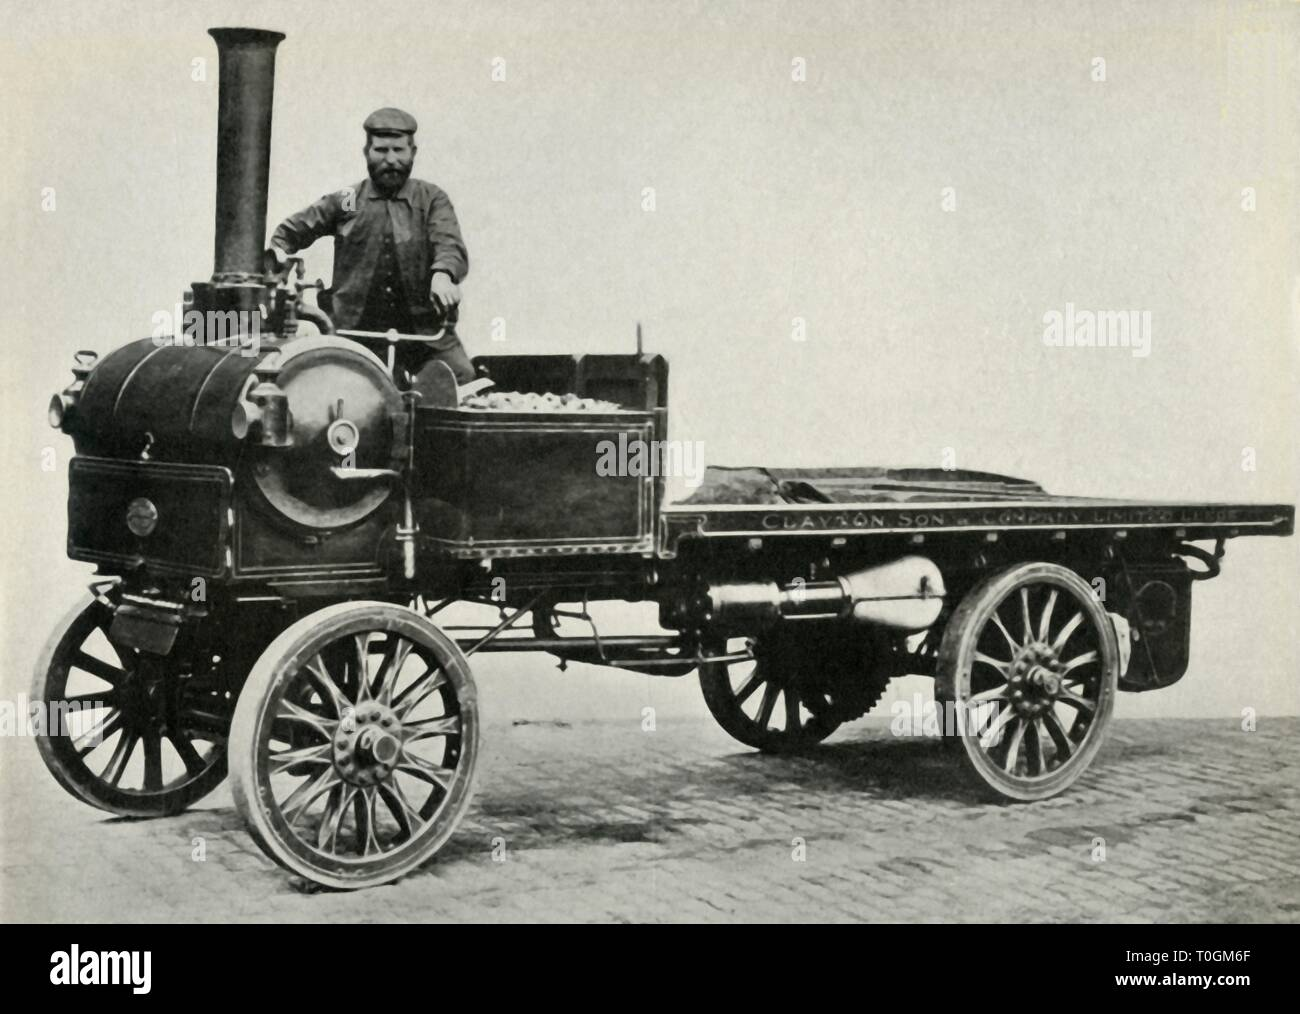 Yorskhire steam wagon, 1903, (1947). Creator: Unknown. Stock Photo